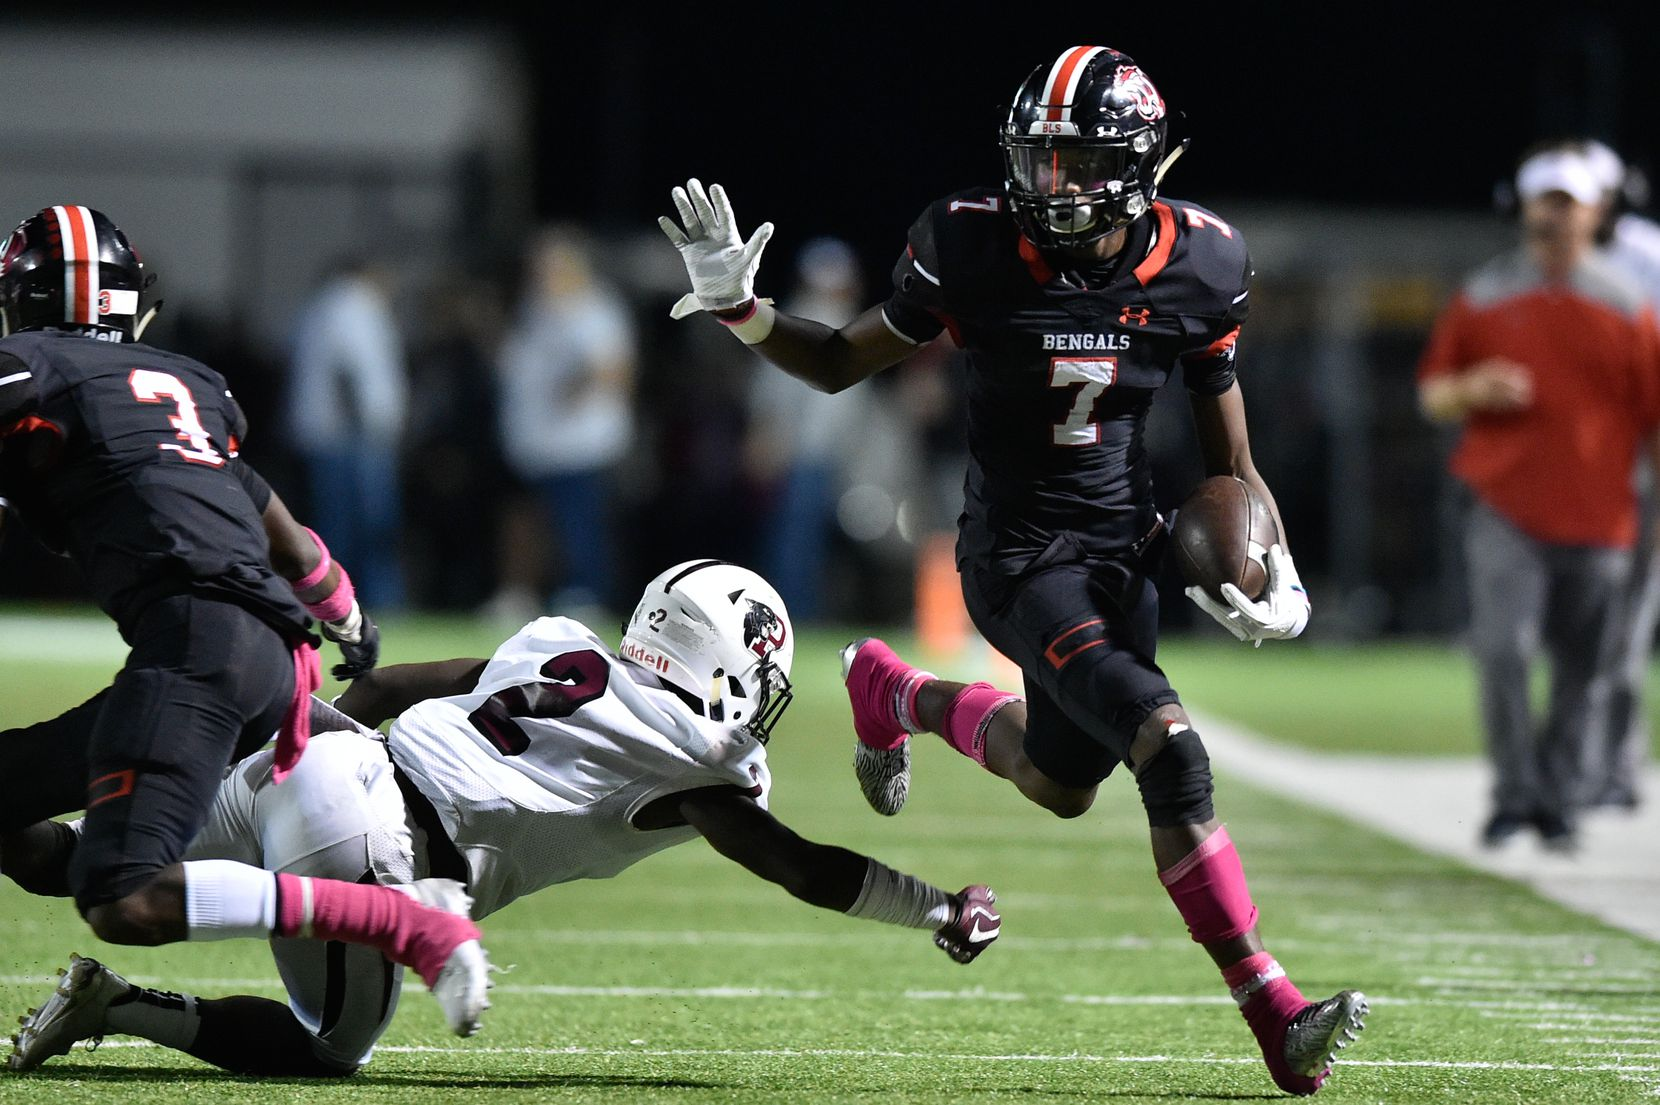 Braswell wide receiver Cam Smith (7) runs after a catch and avoids being tackled by Princeton defensive back C.J. Washington (2) at C.H. Collins Athletic Complex.